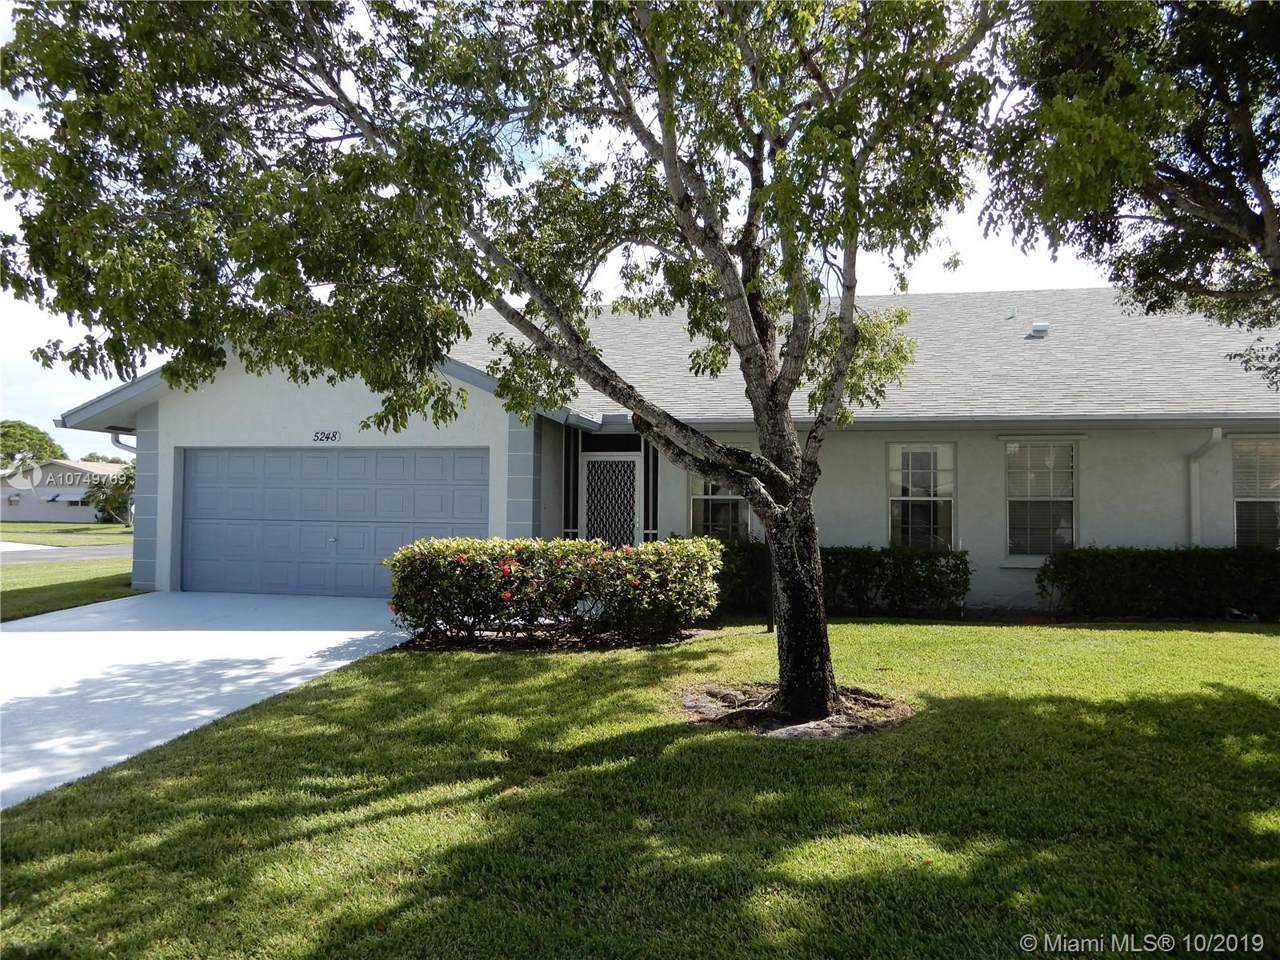 5248 Crystal Anne Dr - Photo 1